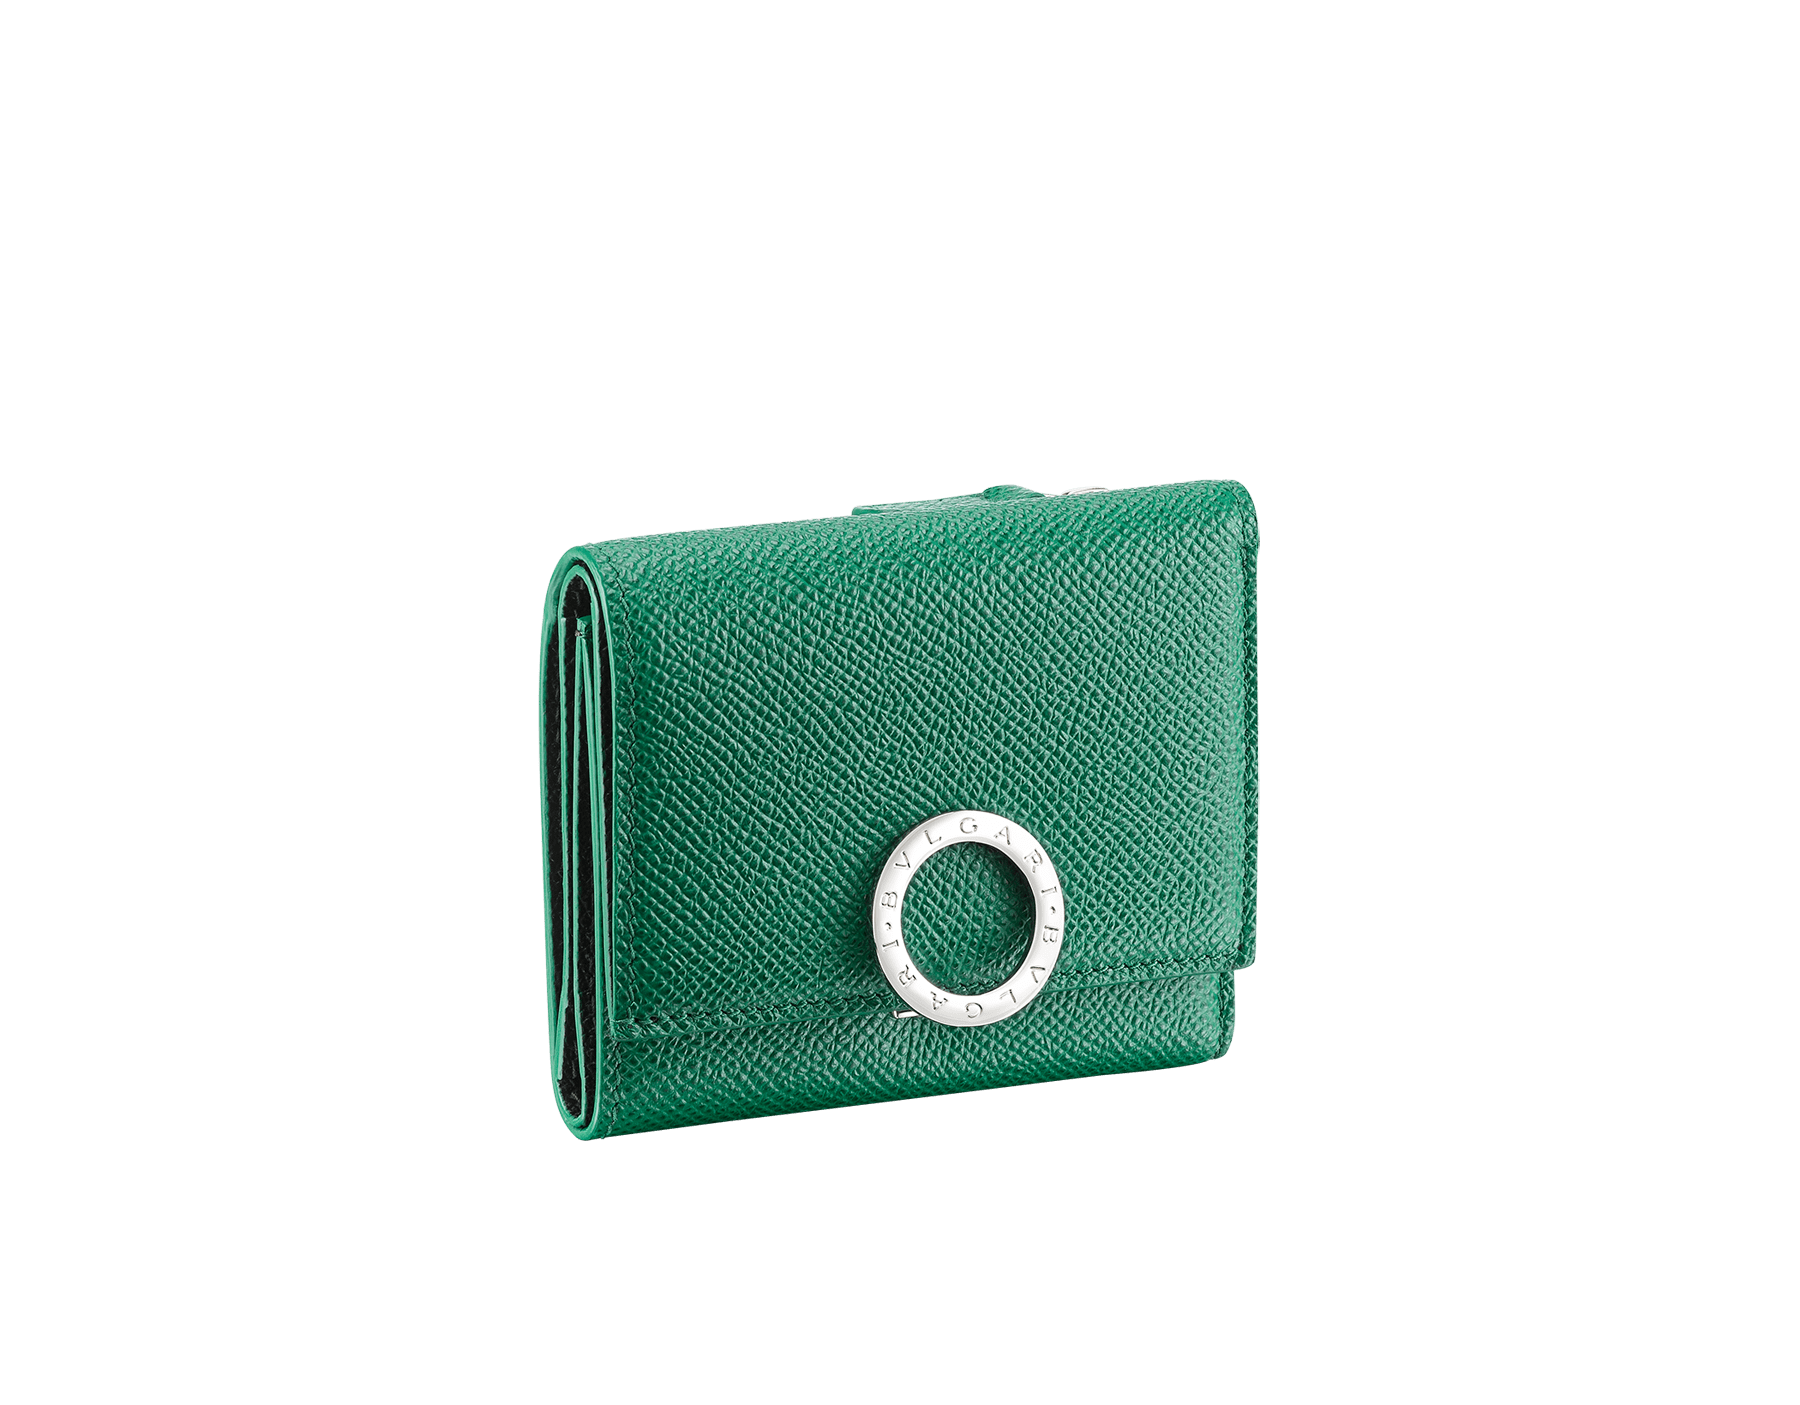 BVLGARI BVLGARI slim compact wallet in emerald green and black grain calf leather. Iconic logo closure clip in palladium plated brass. 289370 image 1